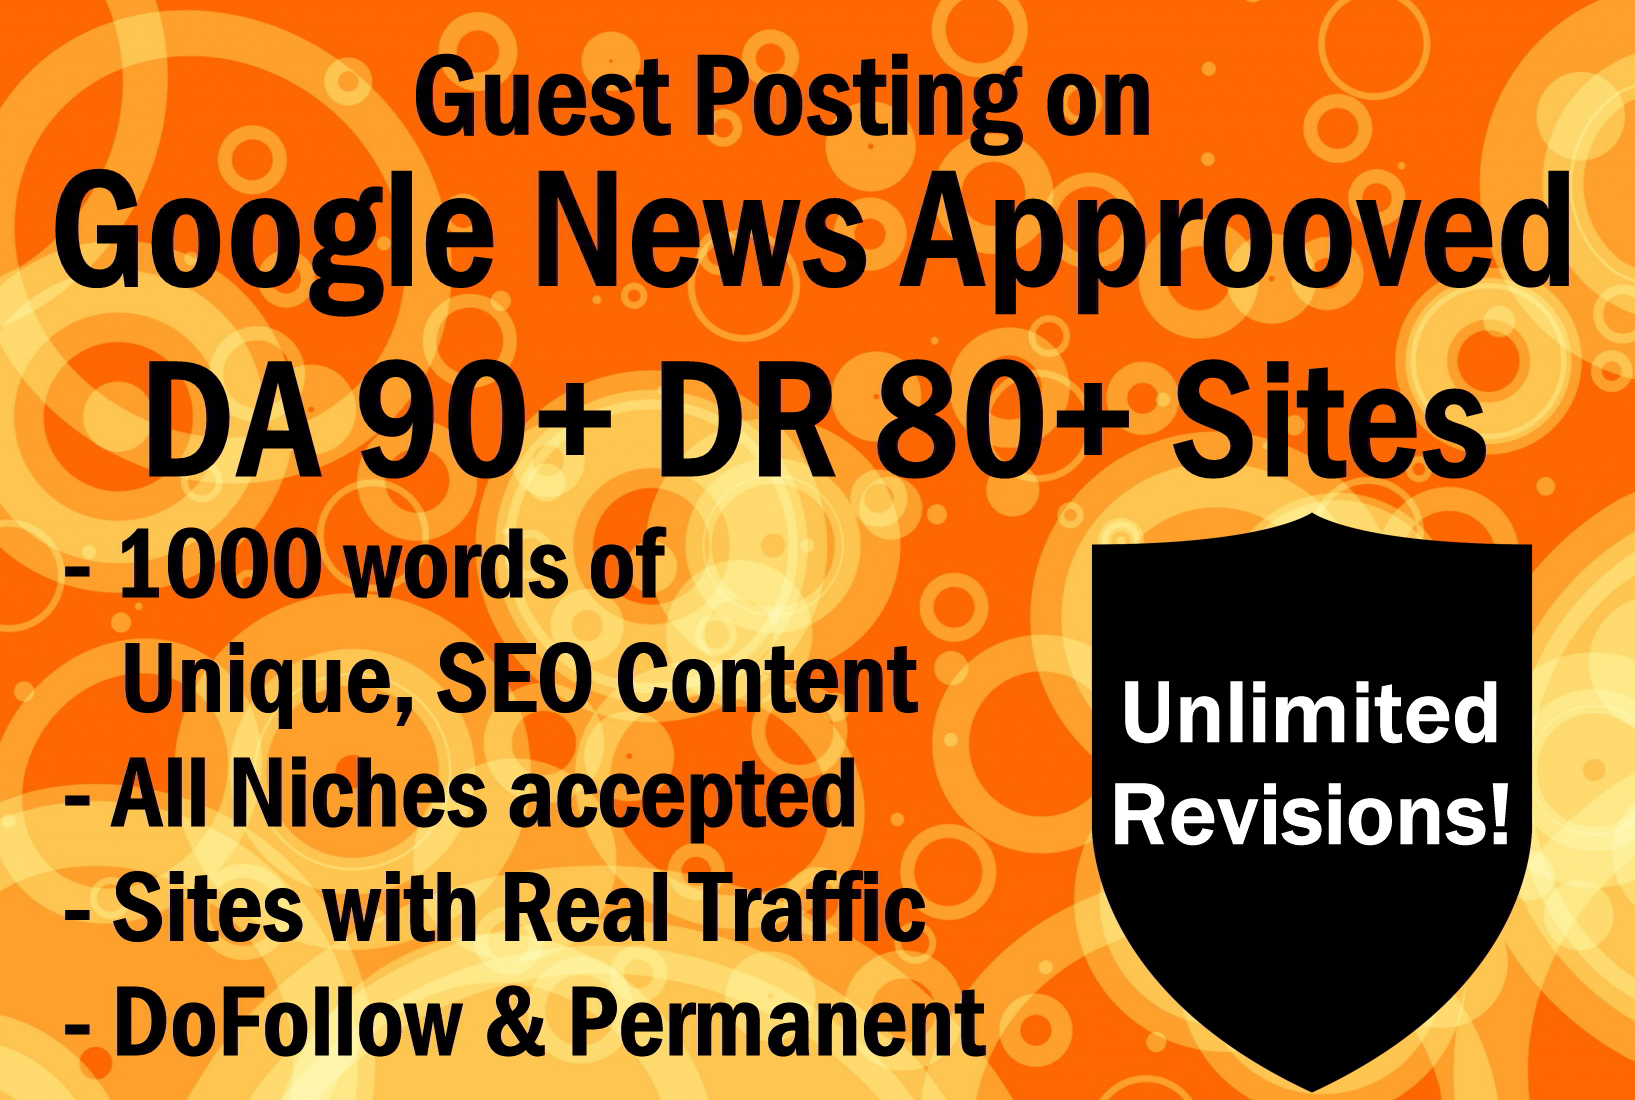 10 Guest Post on DA90+ Google News Approved Sites